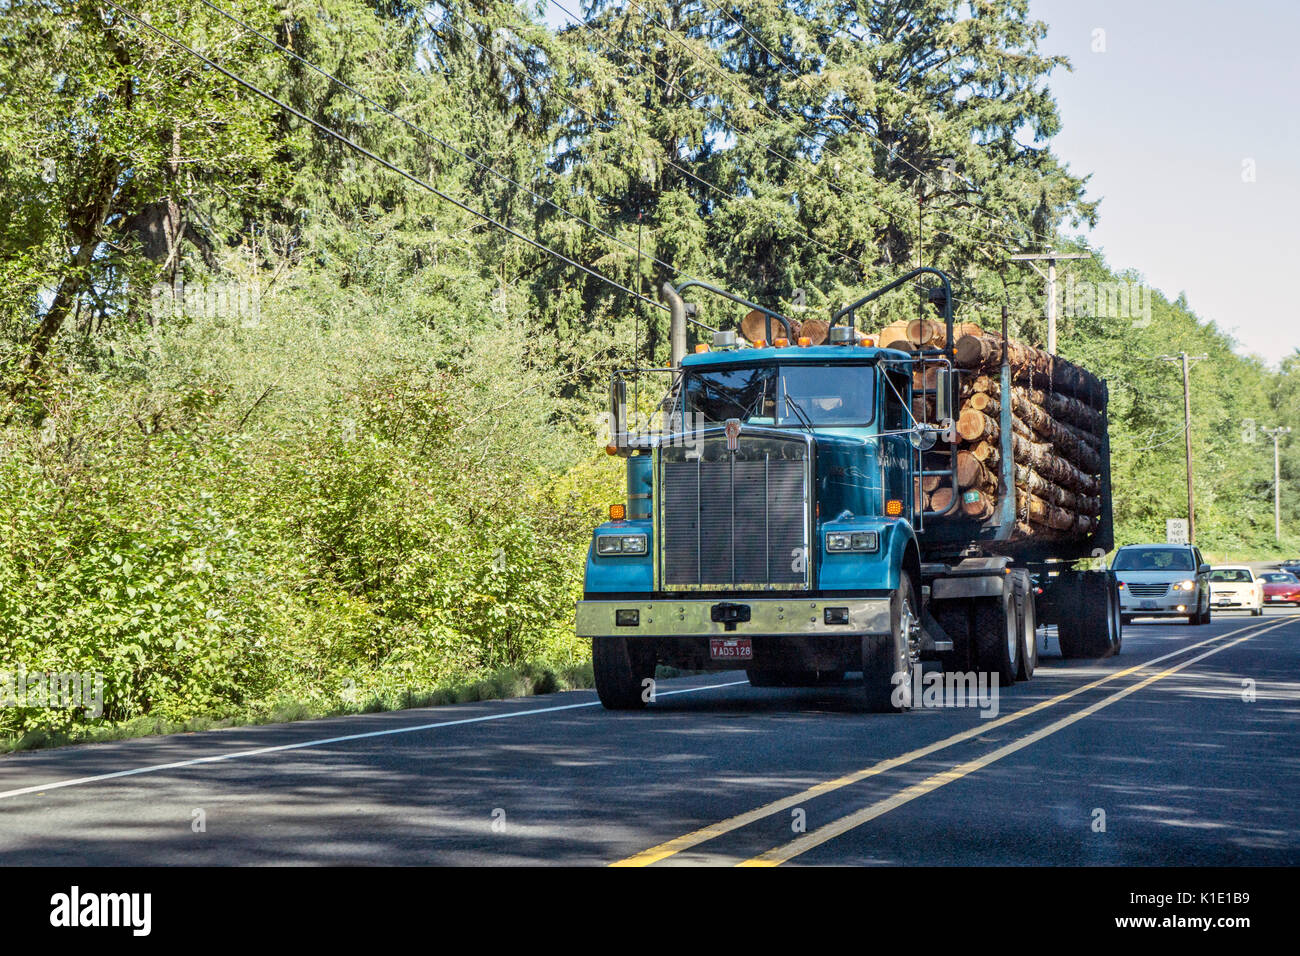 huge logging truck with bright blue cab loaded with fresh cut logs heading for coast highway holds up long line of cars in highway no passing zone - Stock Image